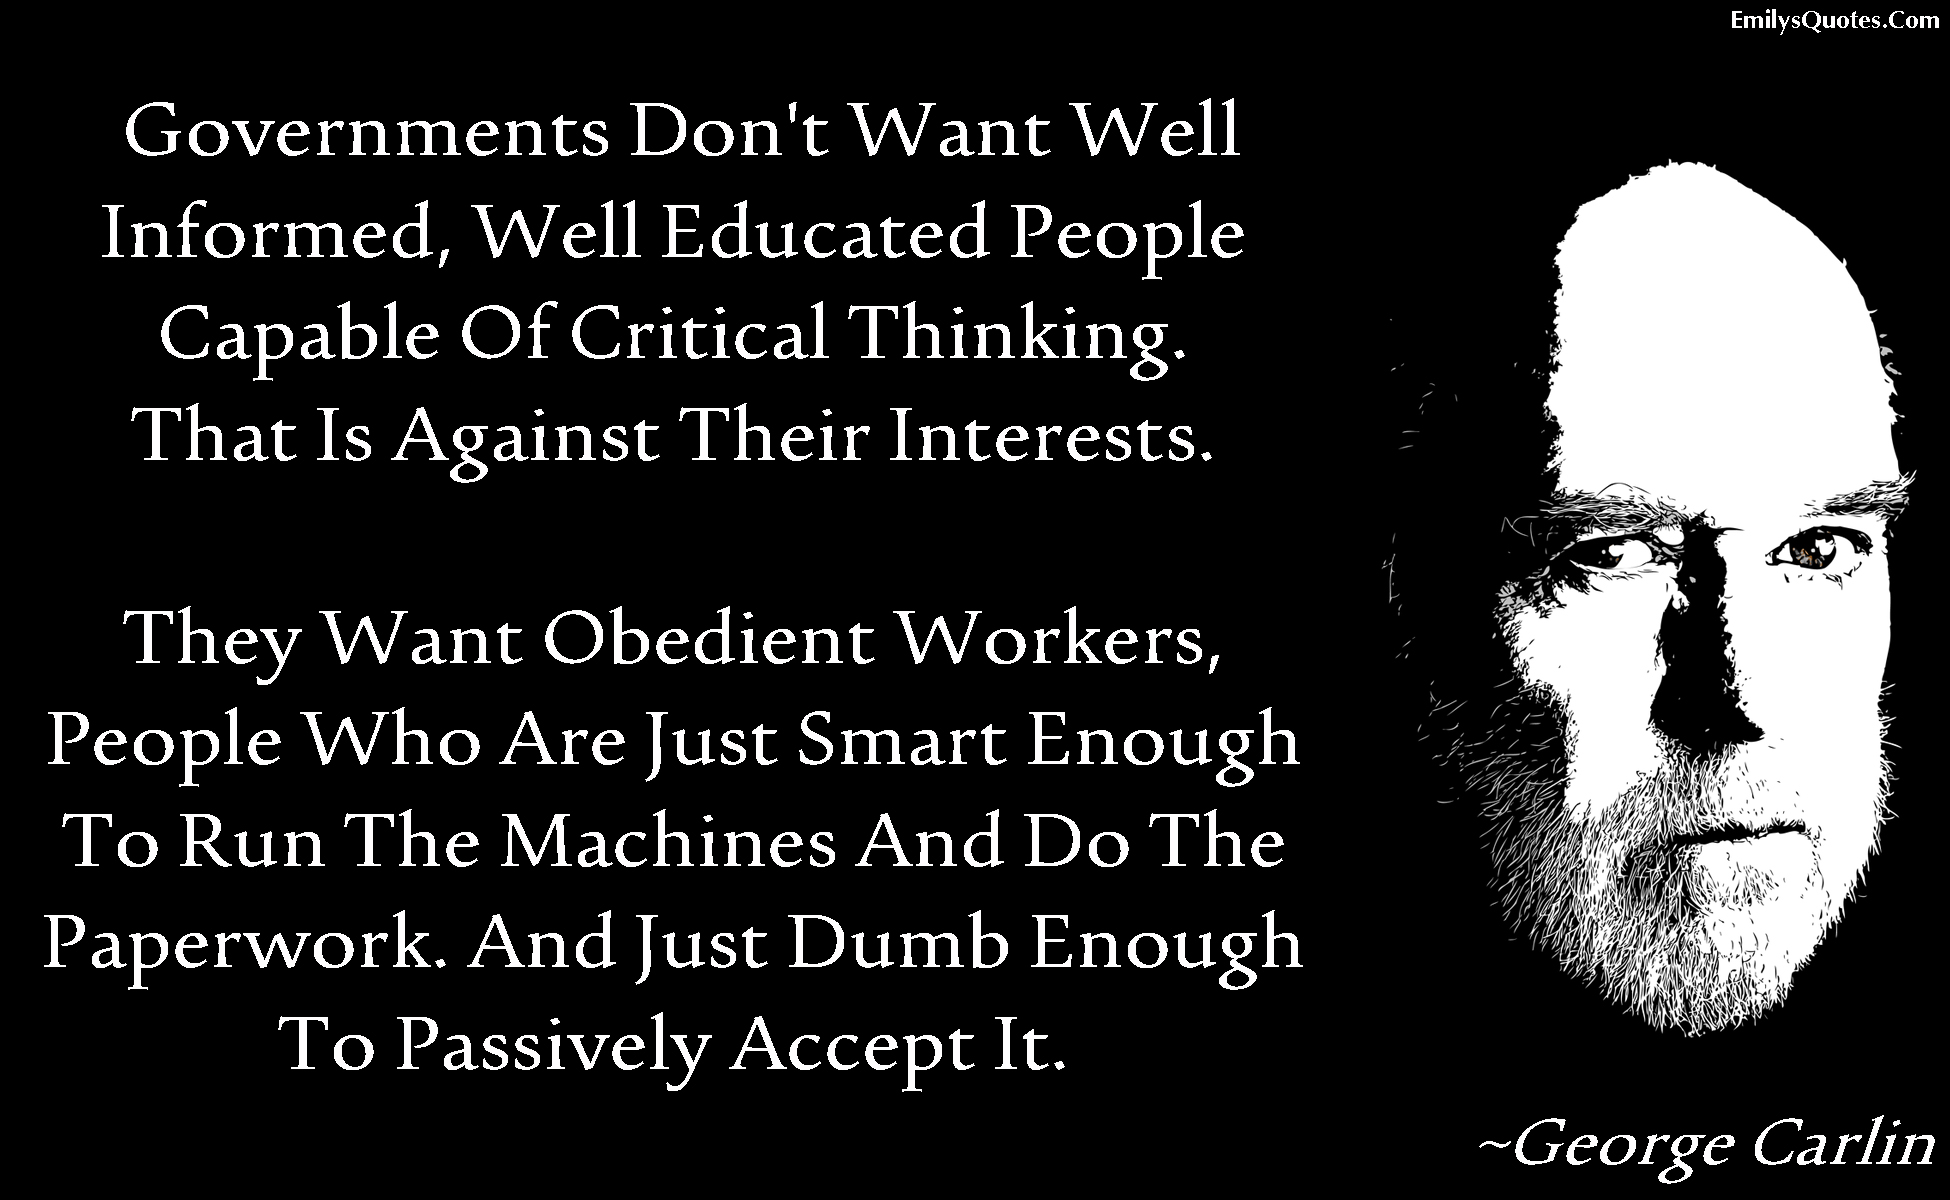 EmilysQuotes.Com-Government-educated-people-need-ignorance-sad-life-George-Carlin-truth.jpg